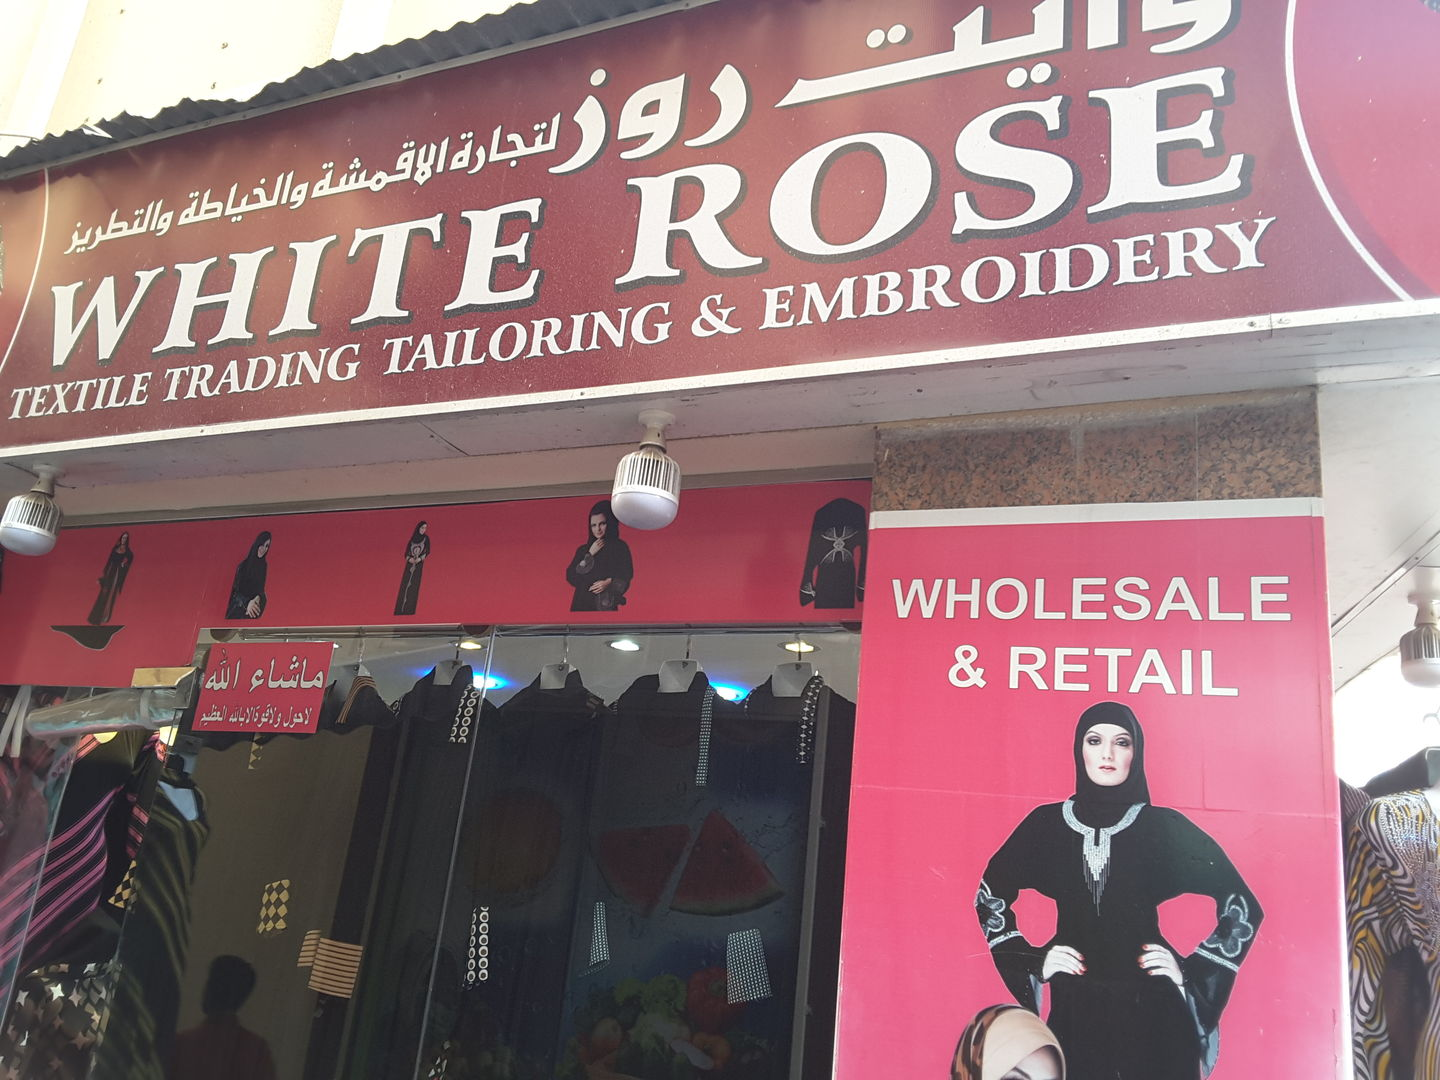 HiDubai-business-white-rose-textile-trading-tailoring-embroidery-b2b-services-distributors-wholesalers-ayal-nasir-dubai-2